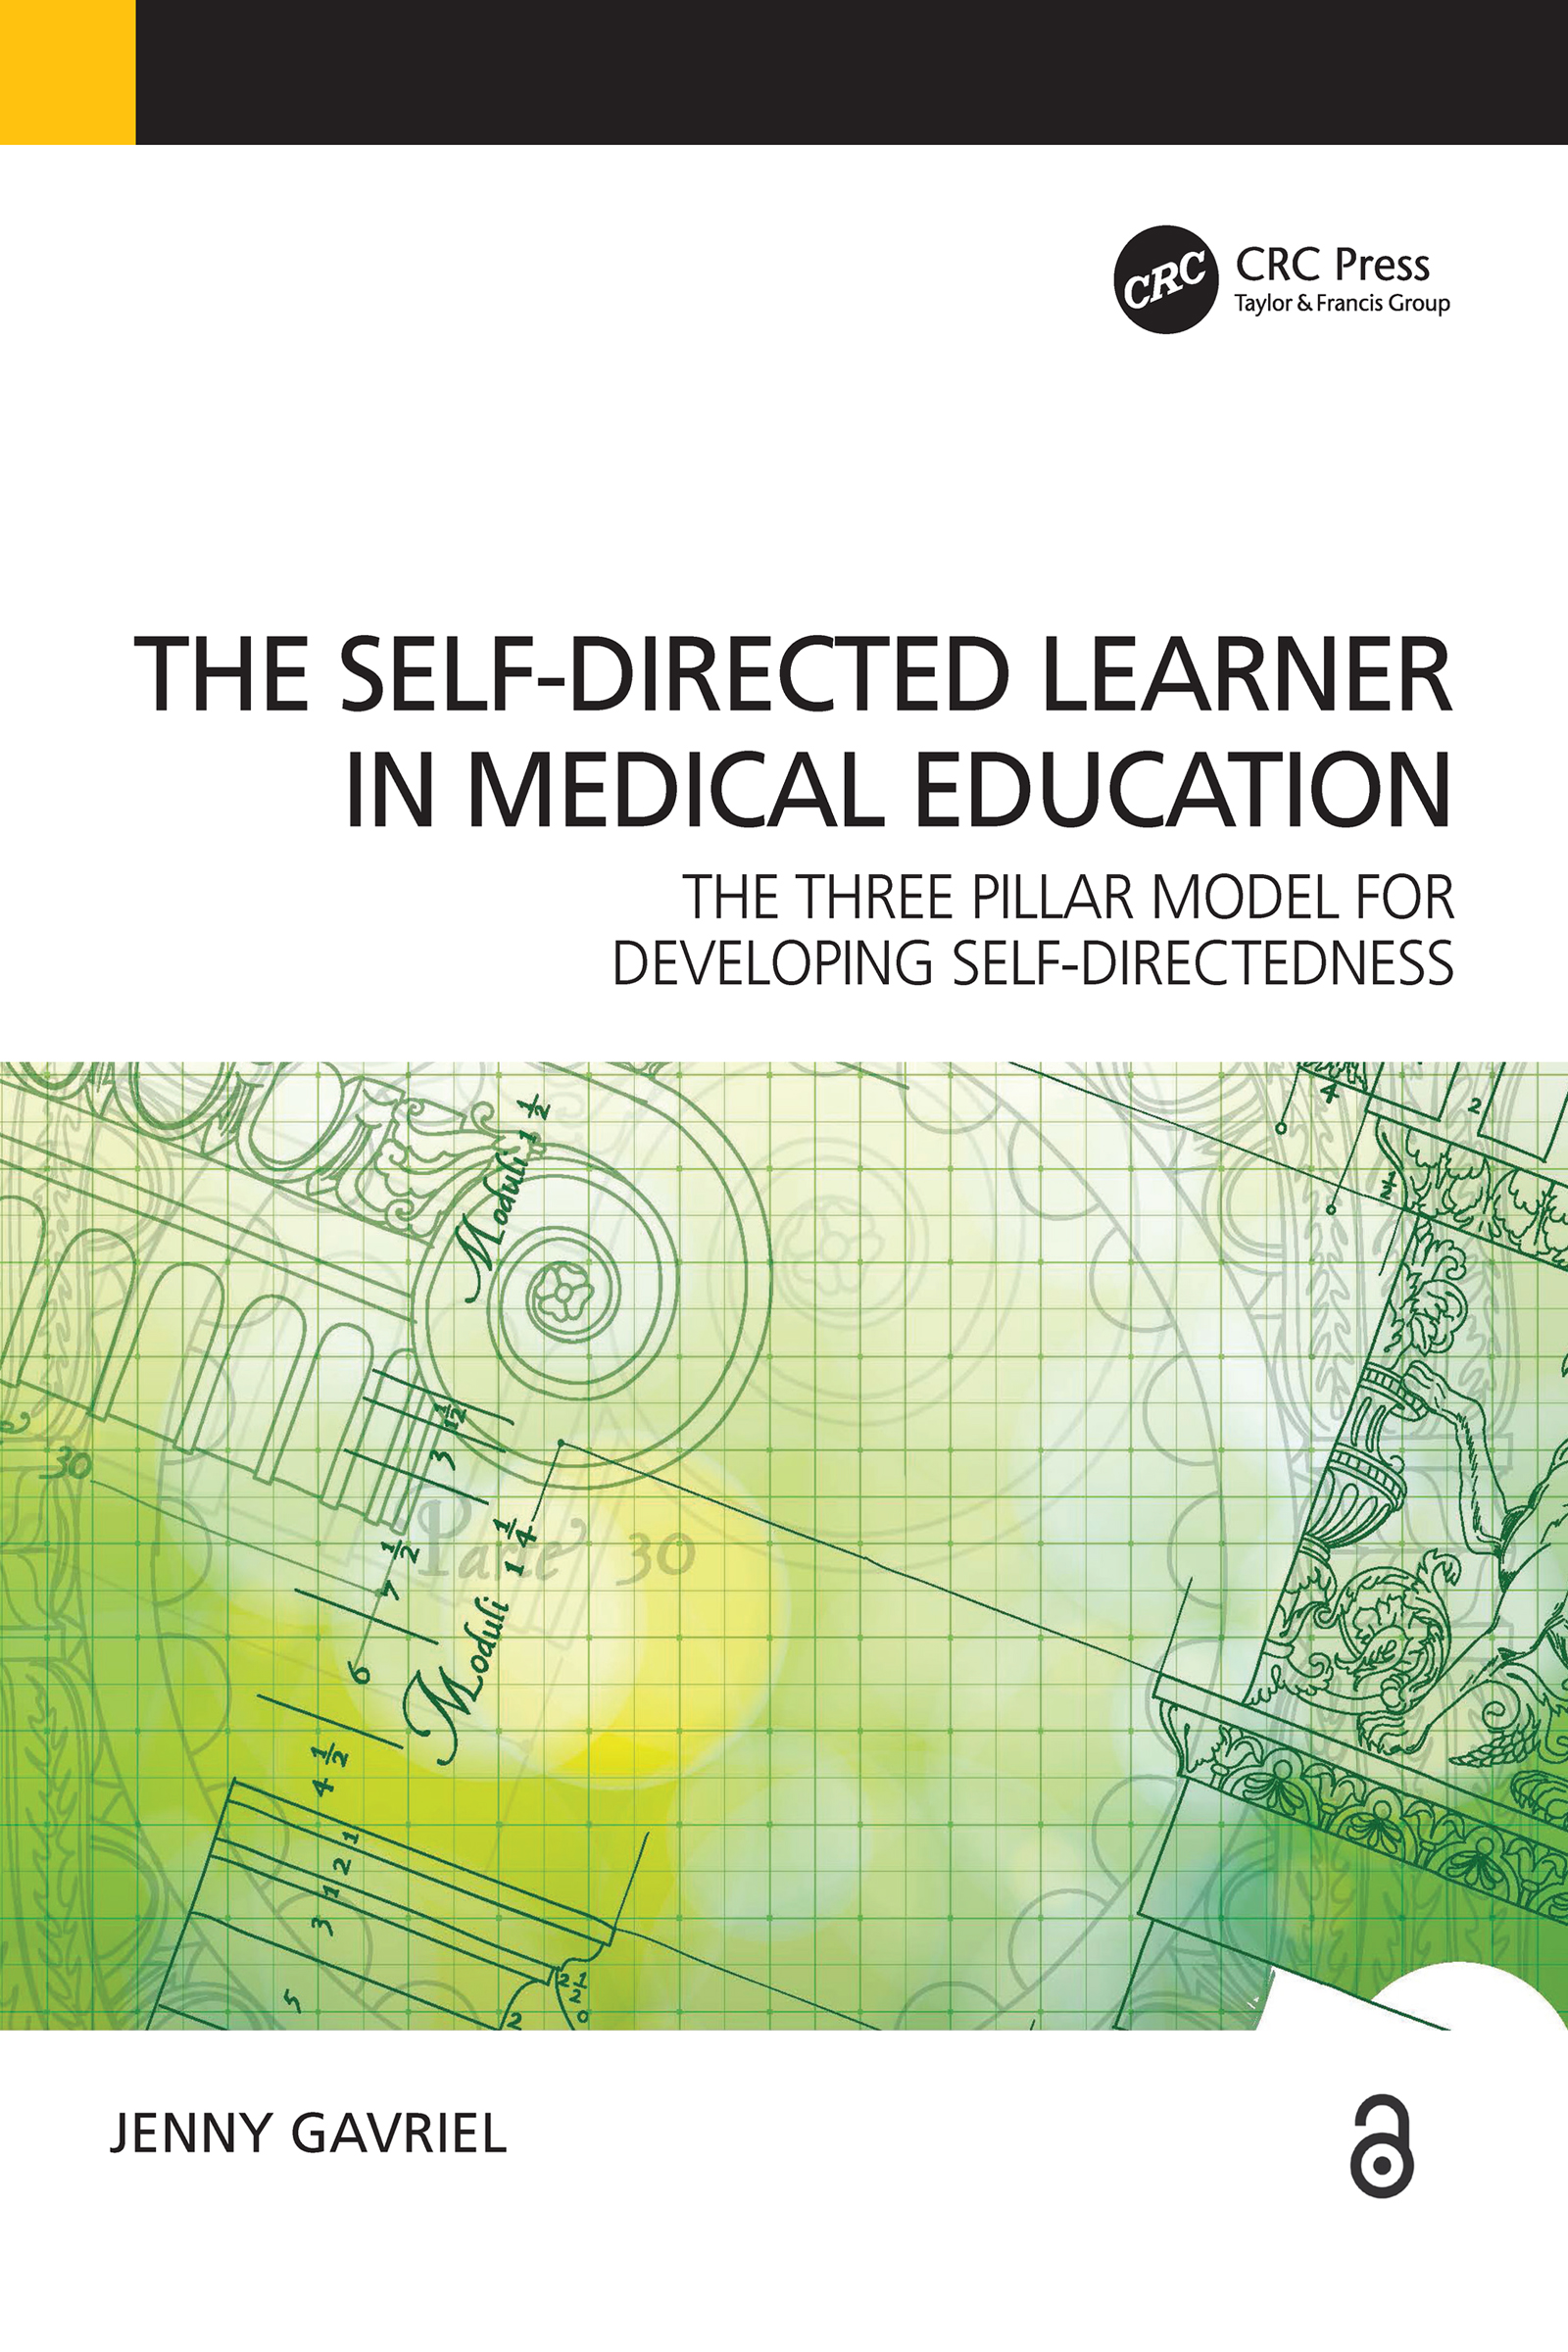 The Self-Directed Learner in Medical Education